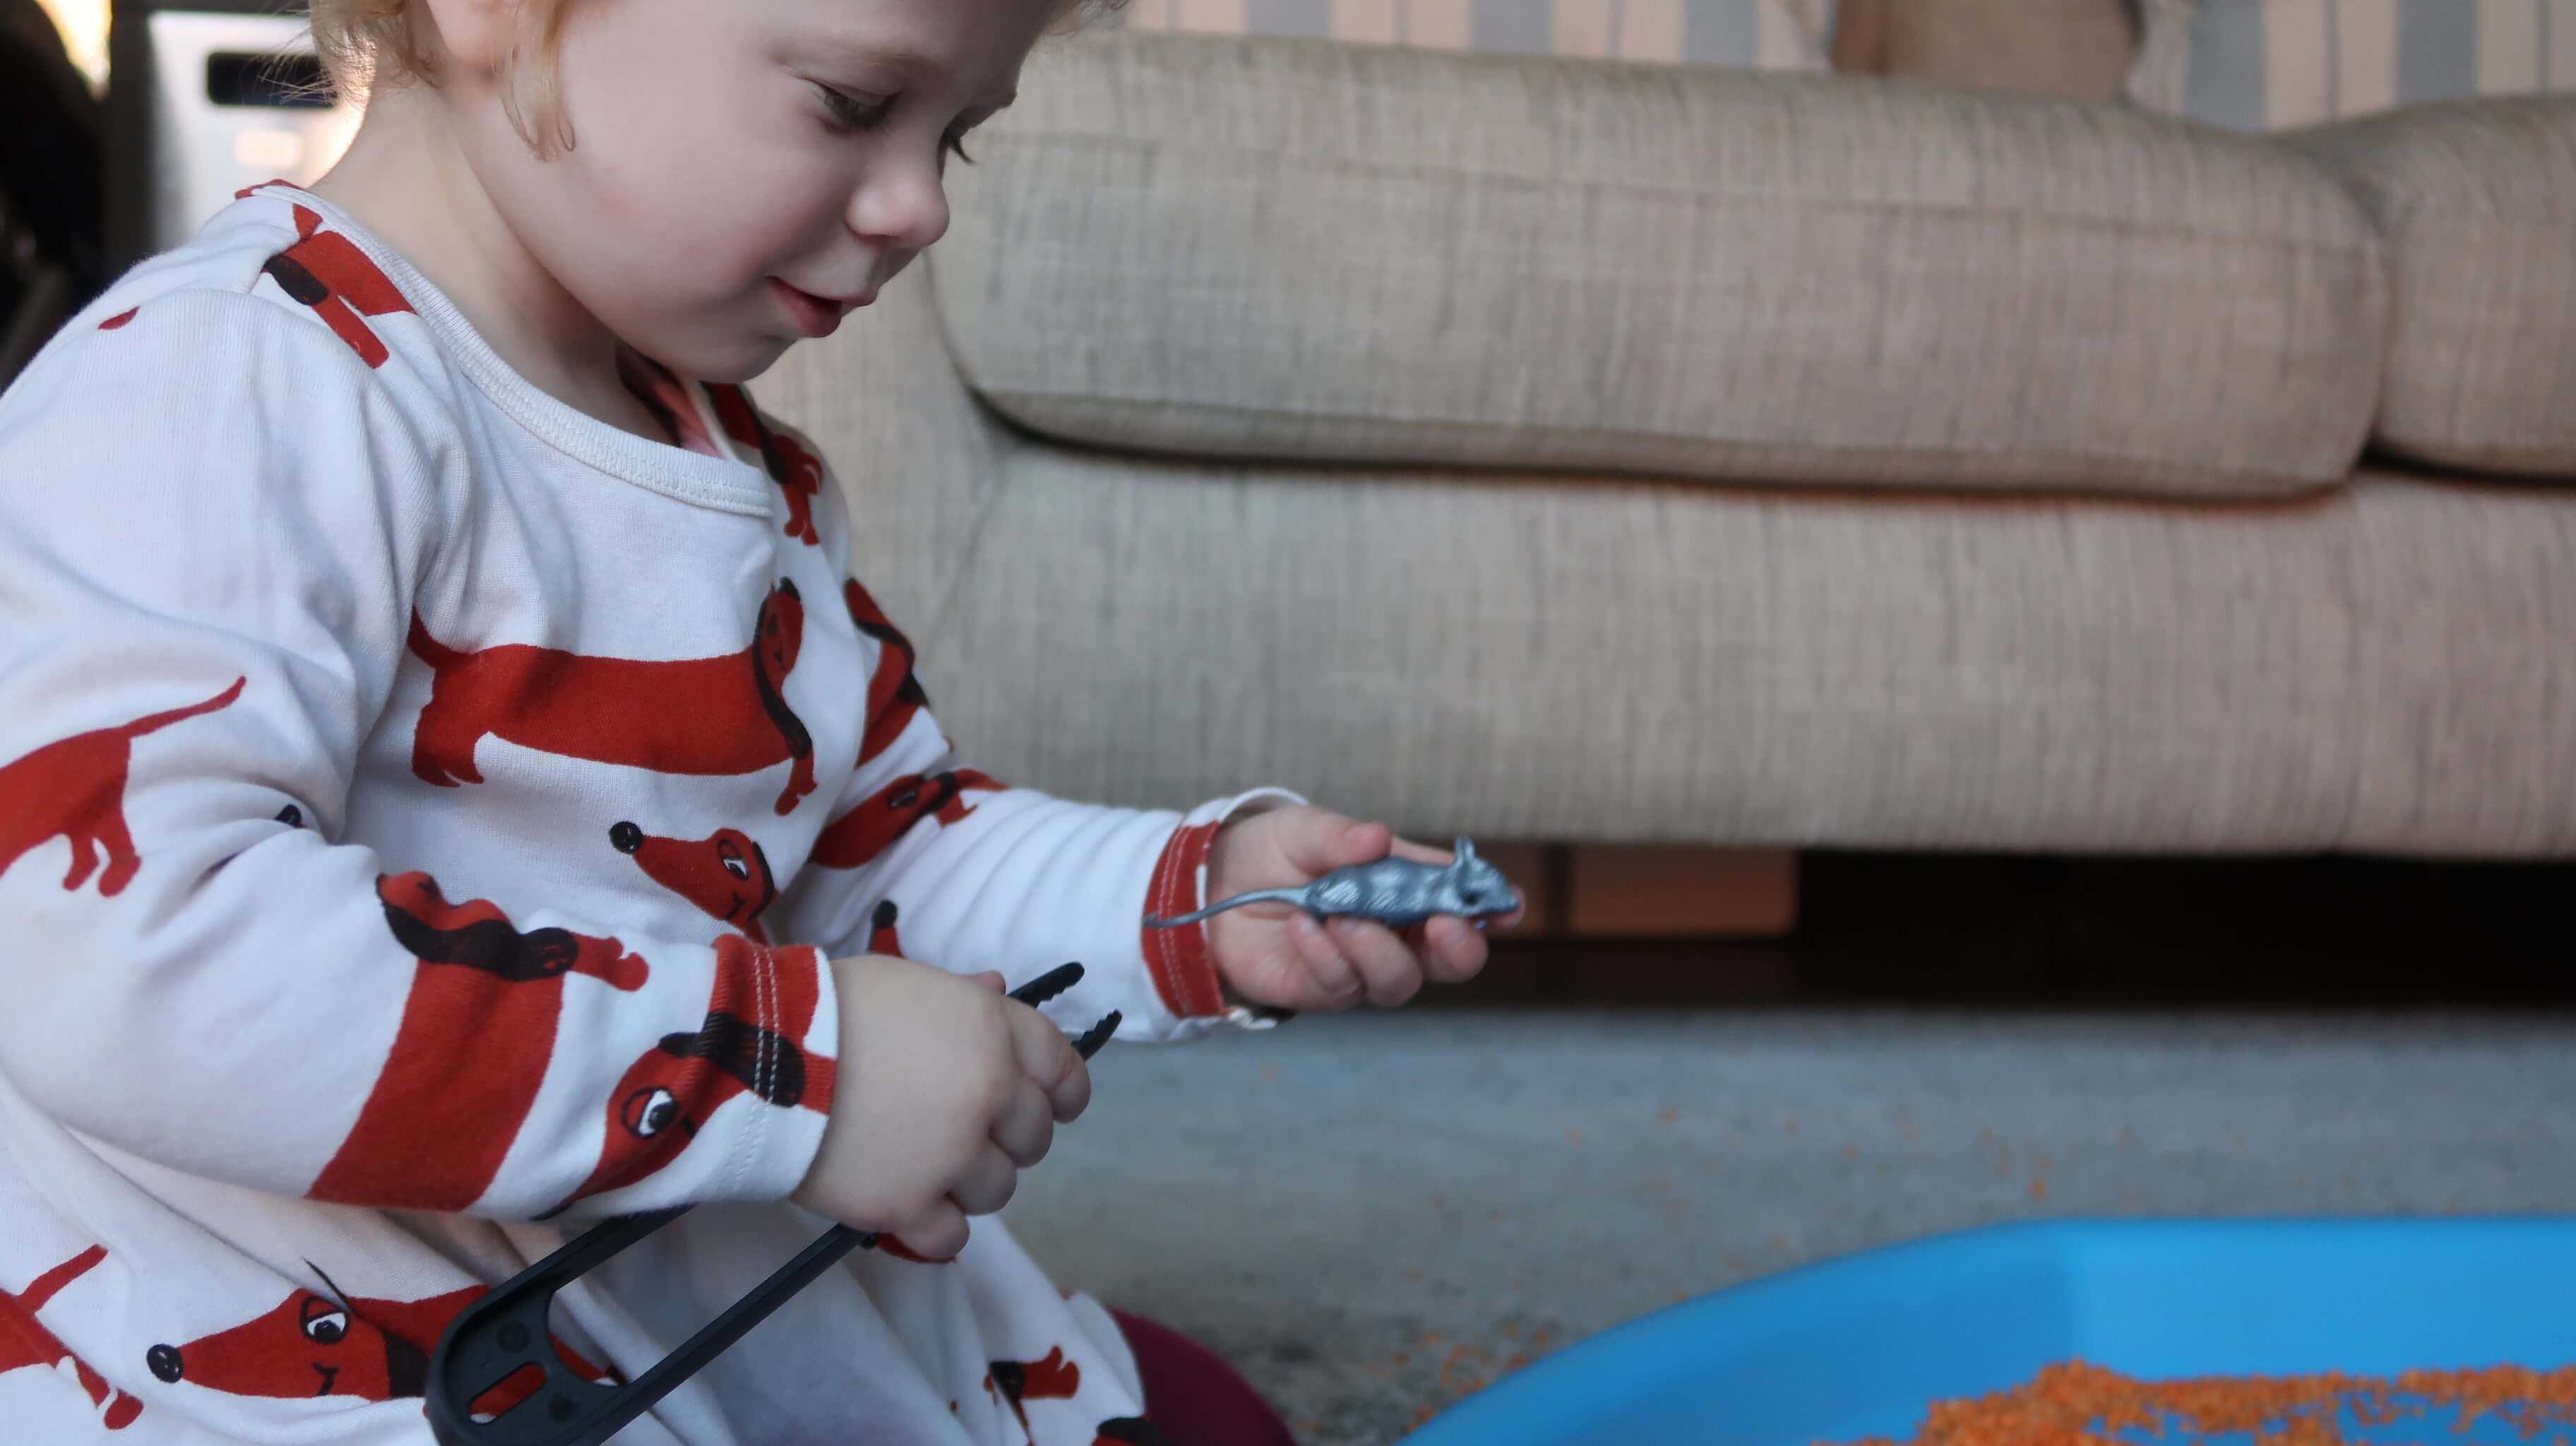 Activities for Encouraging Pencil Grip - M holding a small plastic toy mouse and plastic tongs.